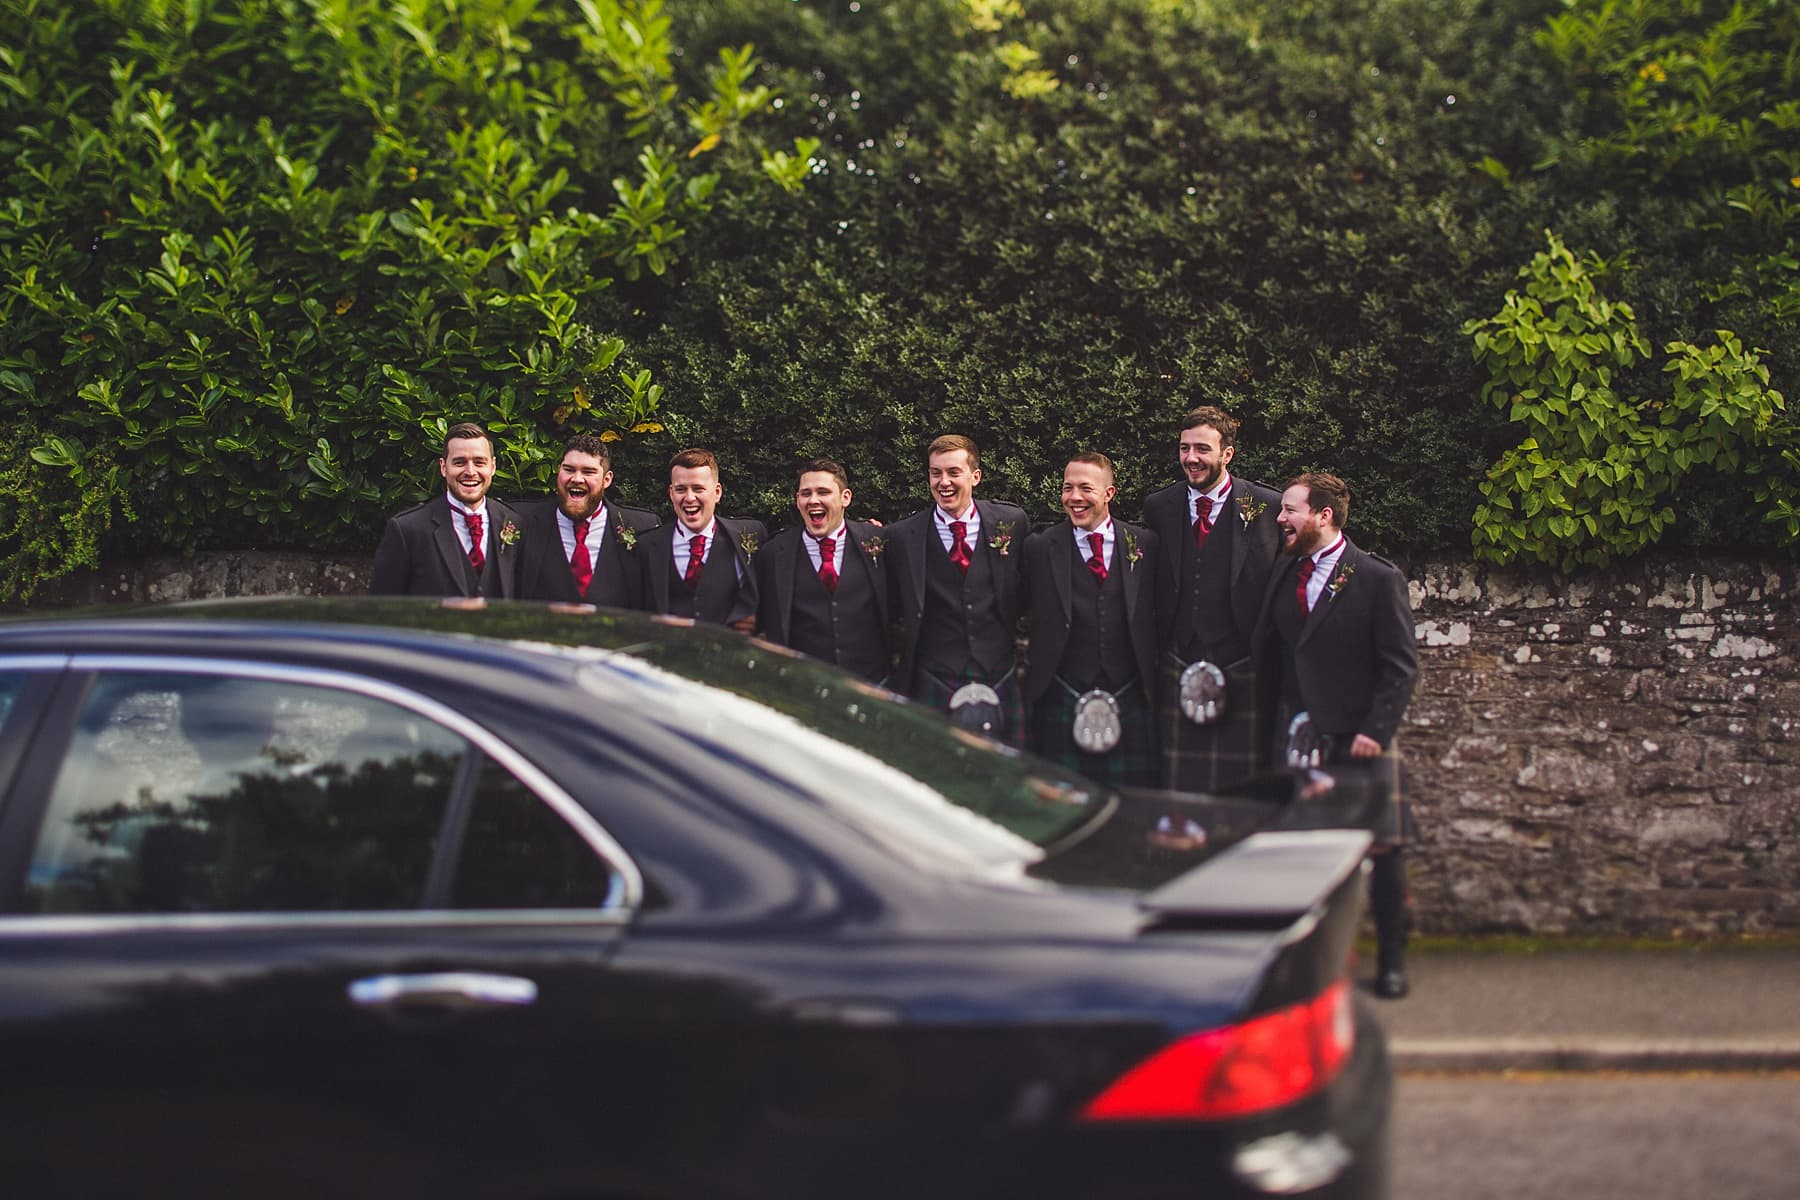 ireland wedding photographer,kilruddery house wedding,donegal wedding,dalduff farm wedding,chinese tea ceremony,balmoral hotel edinburgh,forest engagement,crieff hotel,glenview wedding,